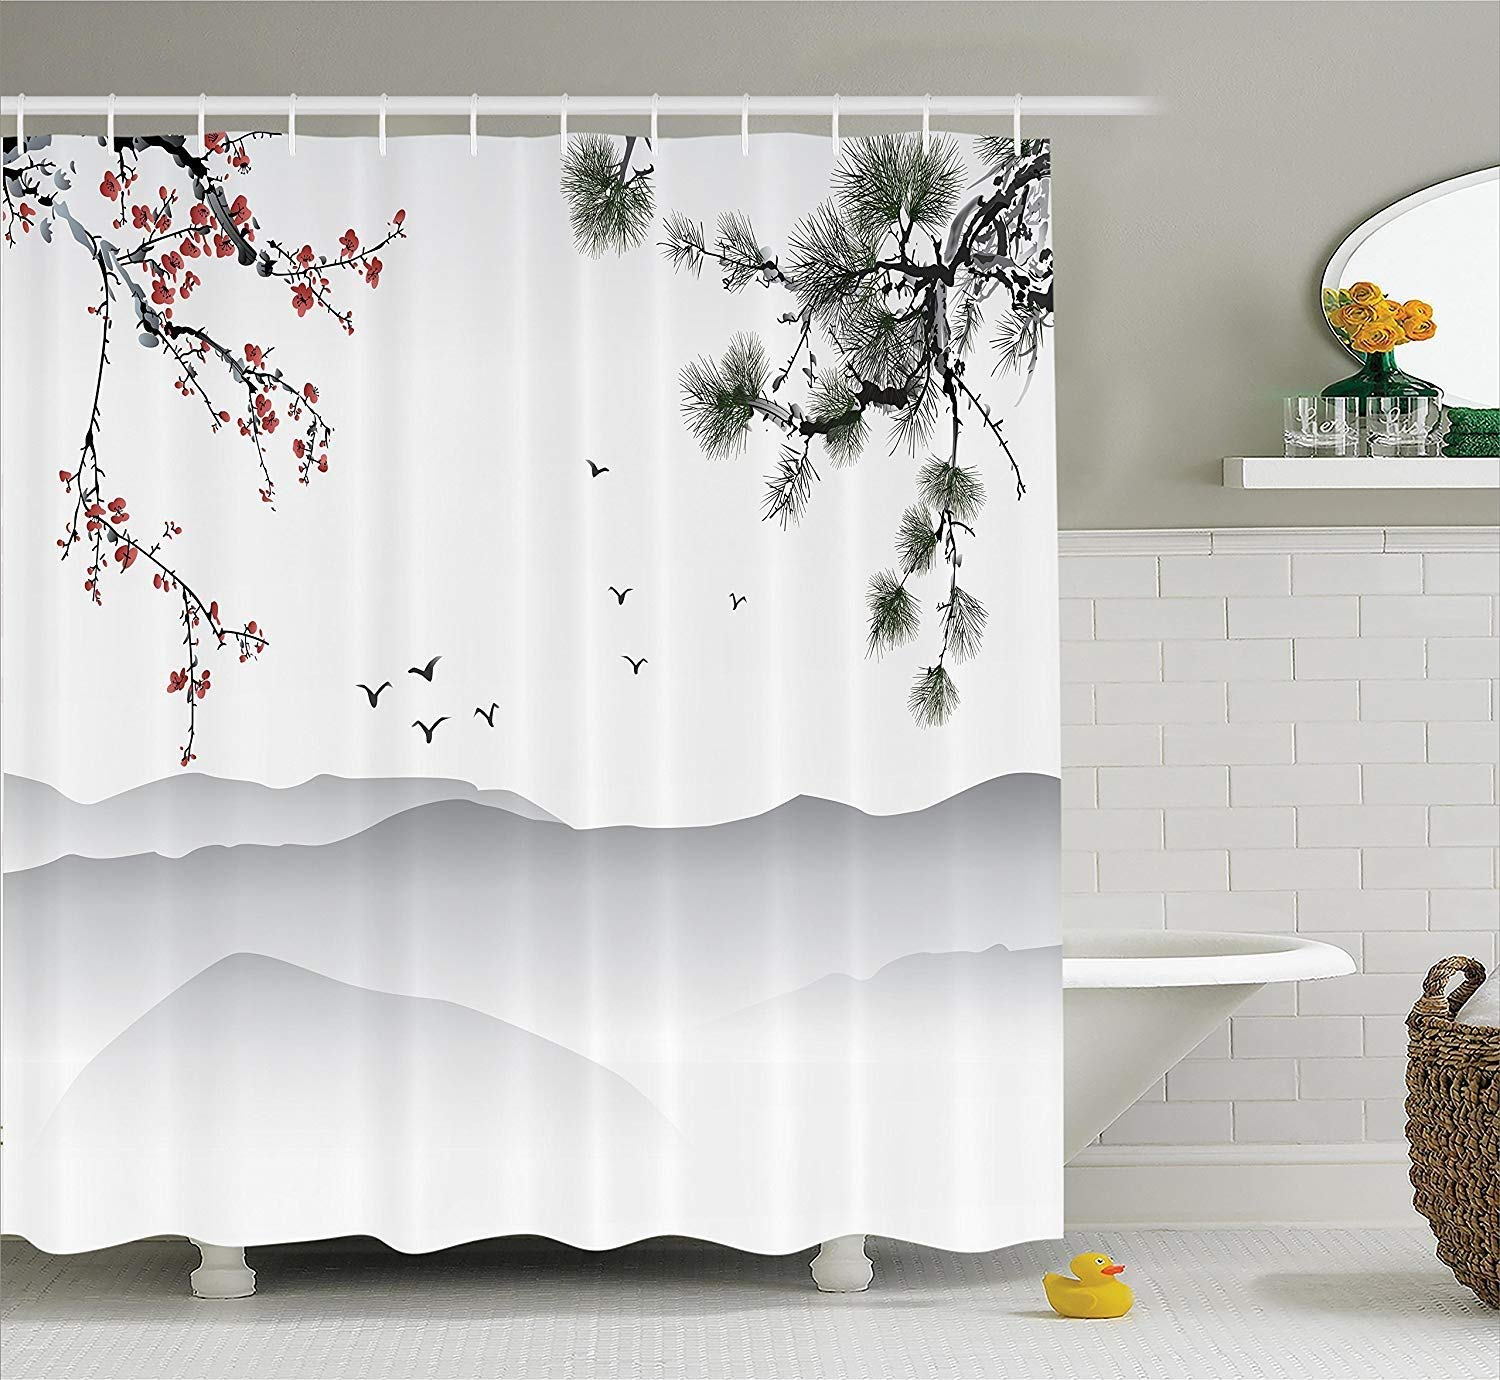 Merveilleux Get Quotations · Shower Curtain House Decor Set, Chinese Painting Style  Artwork With Tree Branches Birds Mountains Landscape